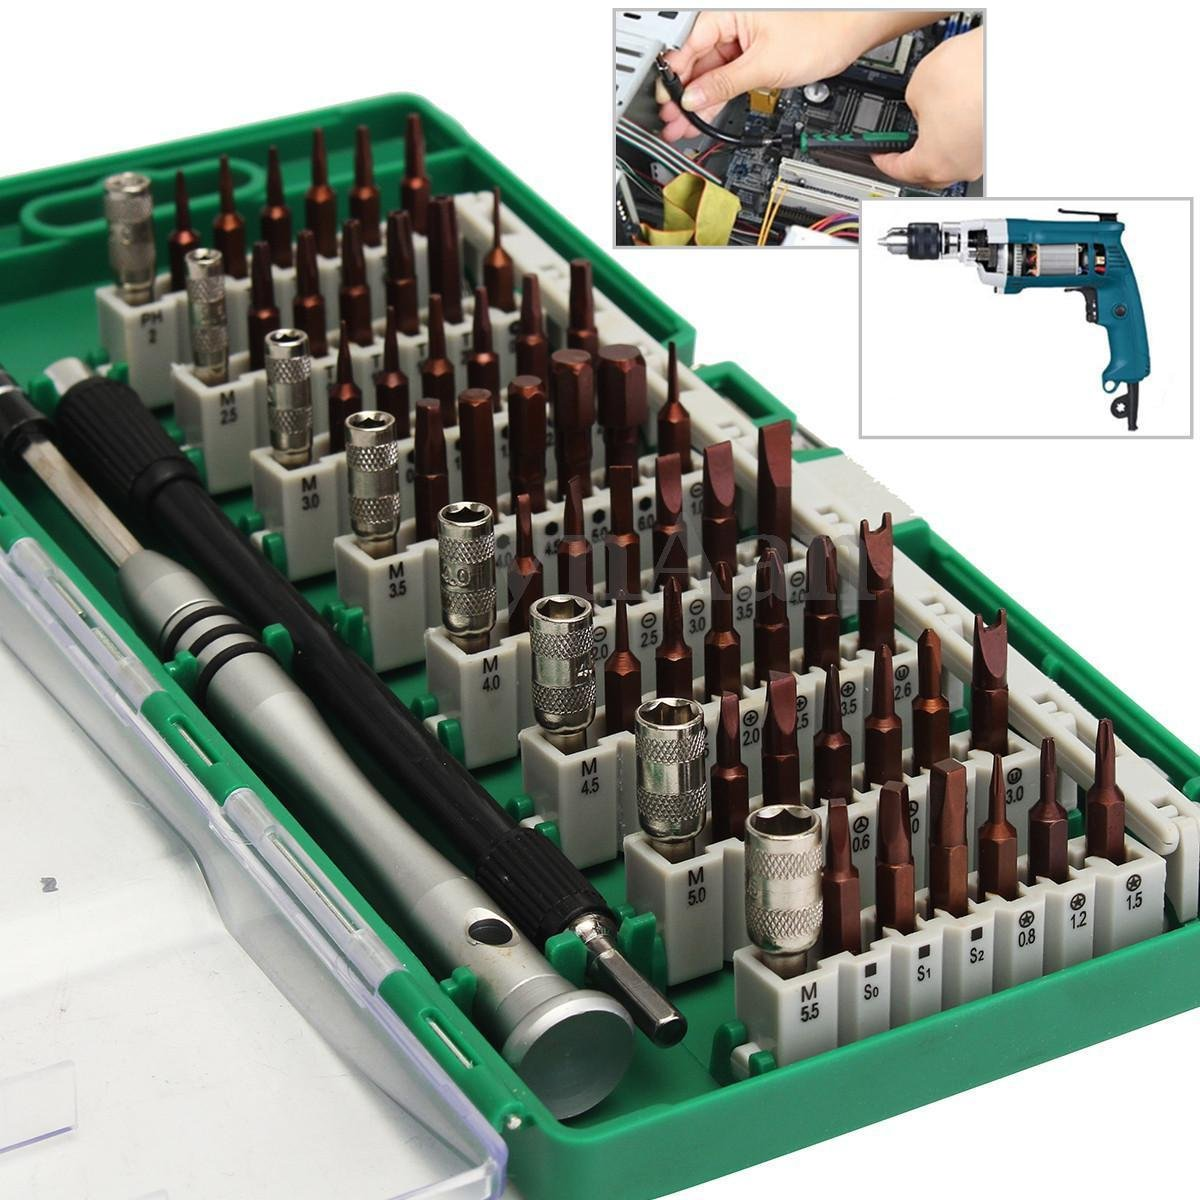 60 in1 Multi-purpose Precision Screwdriver Set Tweezer Cell Phone Repair Tool